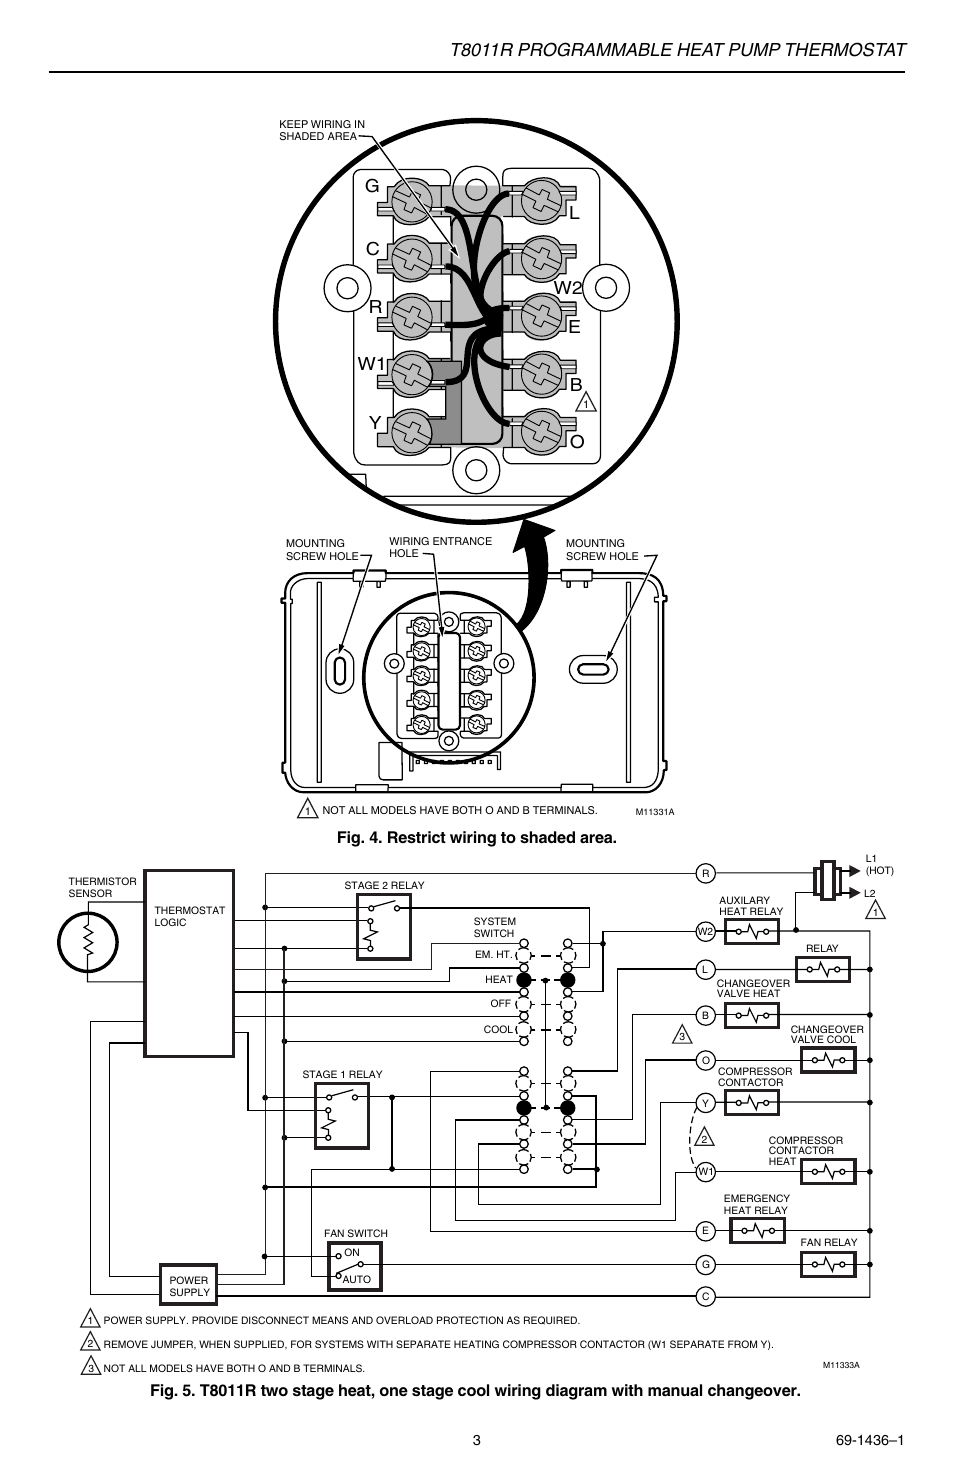 Unique Roto Phase Wiring Diagram Composition - Electrical System ...